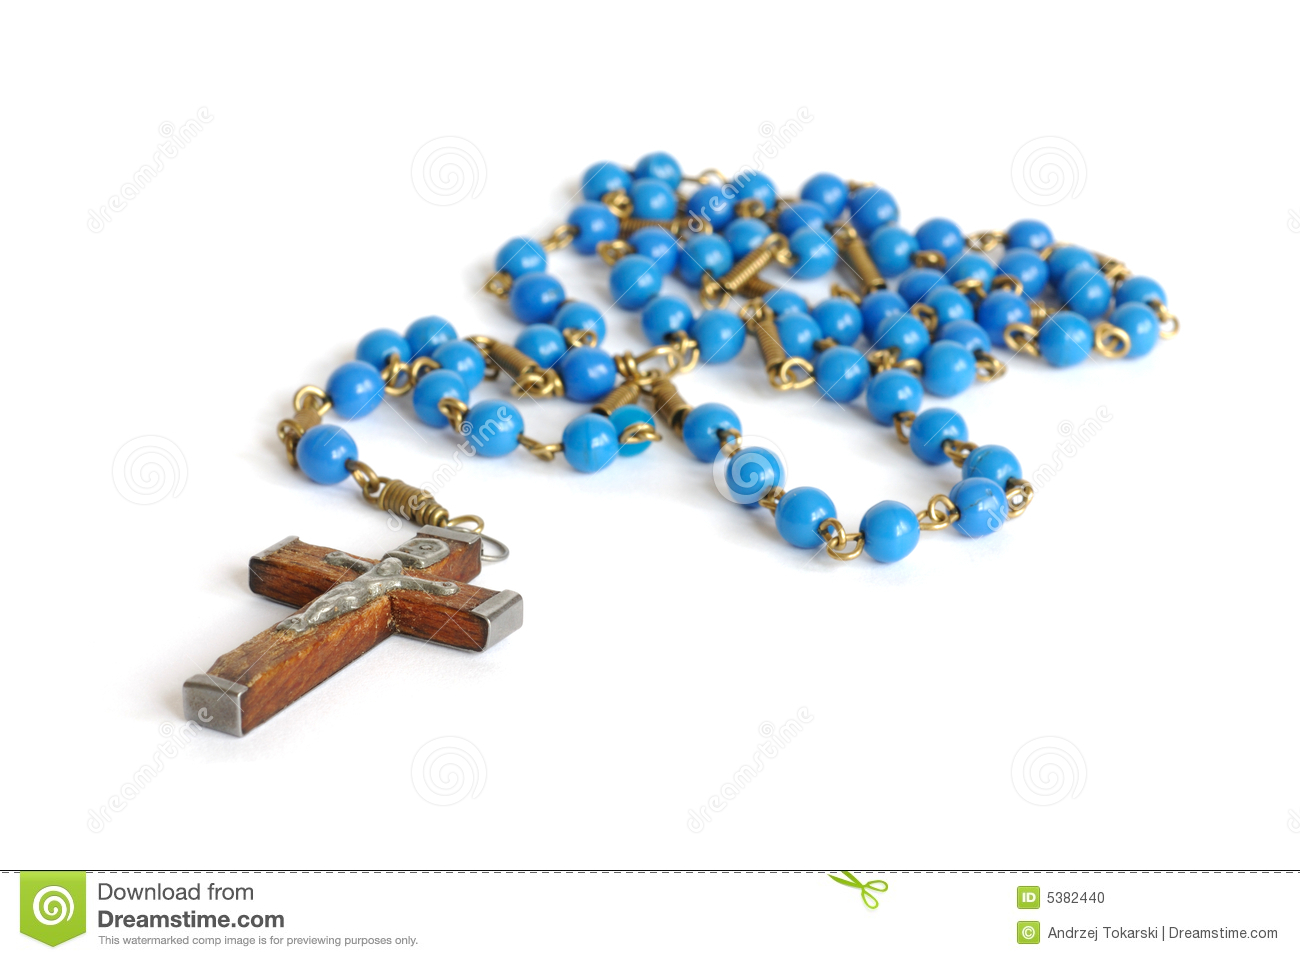 Watch more like Rosary Graphics